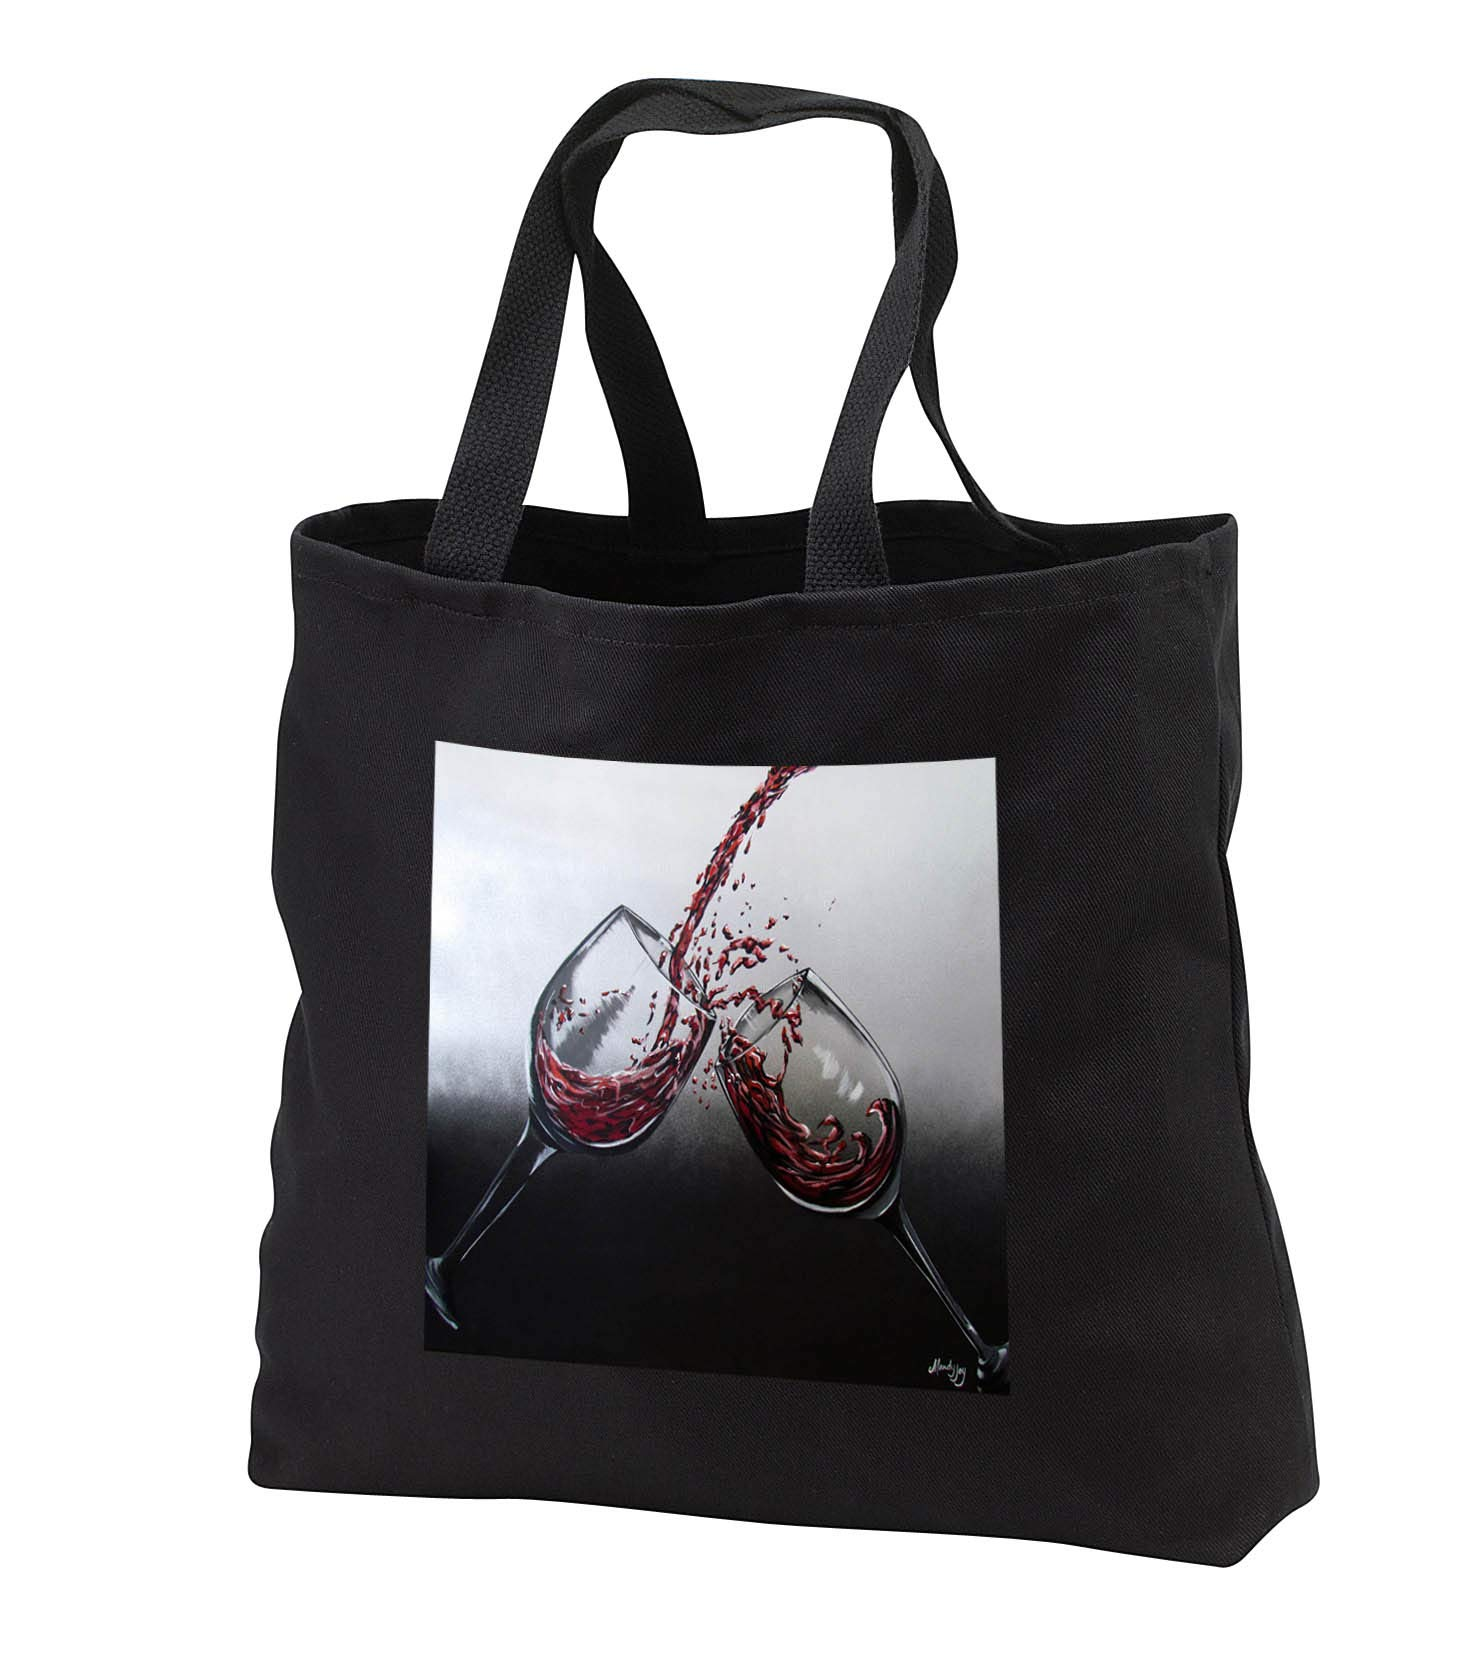 Art By Mandy Joy - Wine, Romance - An image of two glasses of red wine being poured. - Tote Bags - Black Tote Bag 14w x 14h x 3d (tb_294454_1)